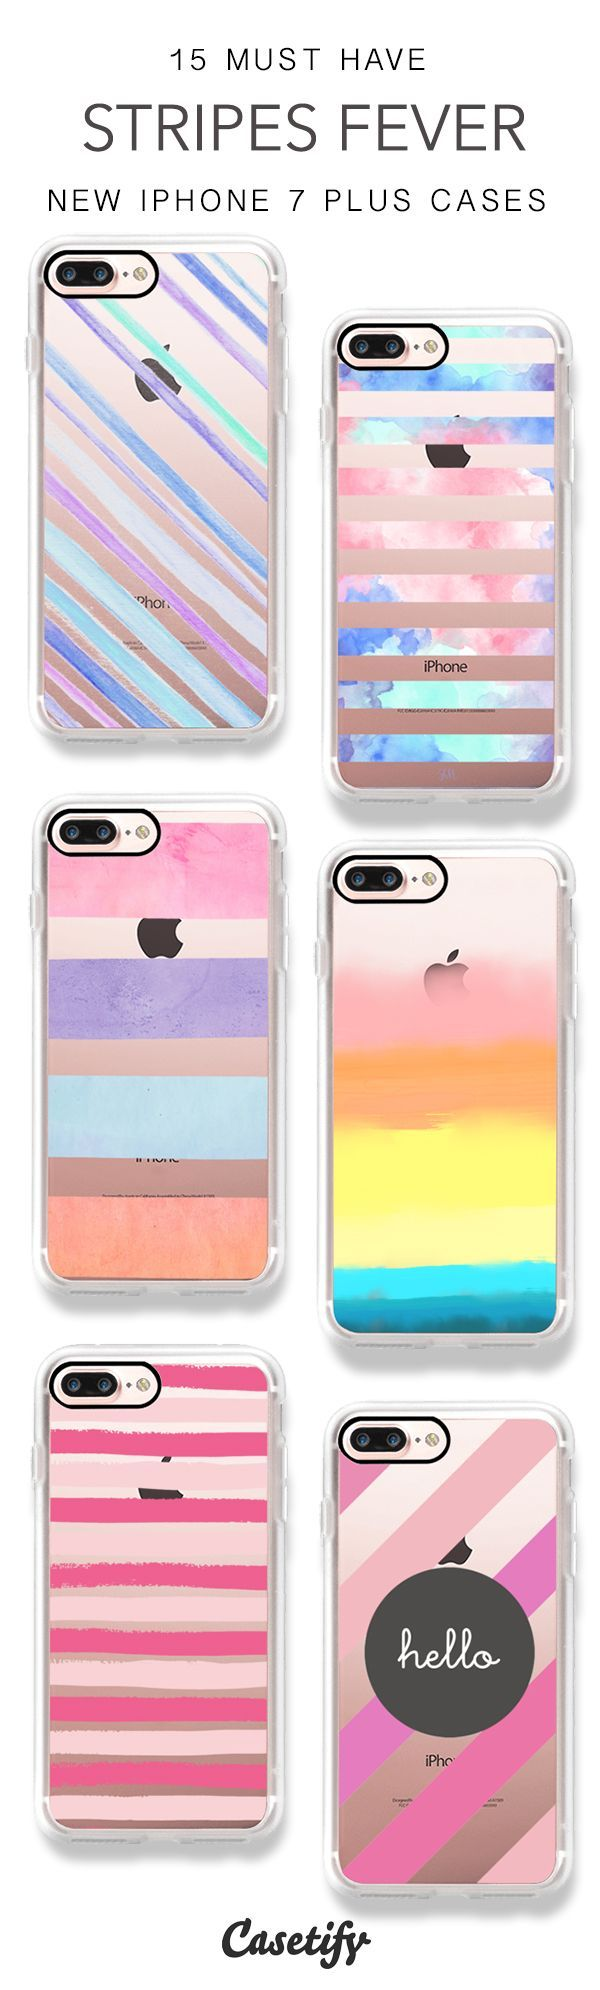 Stripes is never outdated! 15 Must Have Stripes iPhone 7 Cases & iPhone 7 Plus Cases here > https://www.casetify.com/artworks/gqUl2yOC36